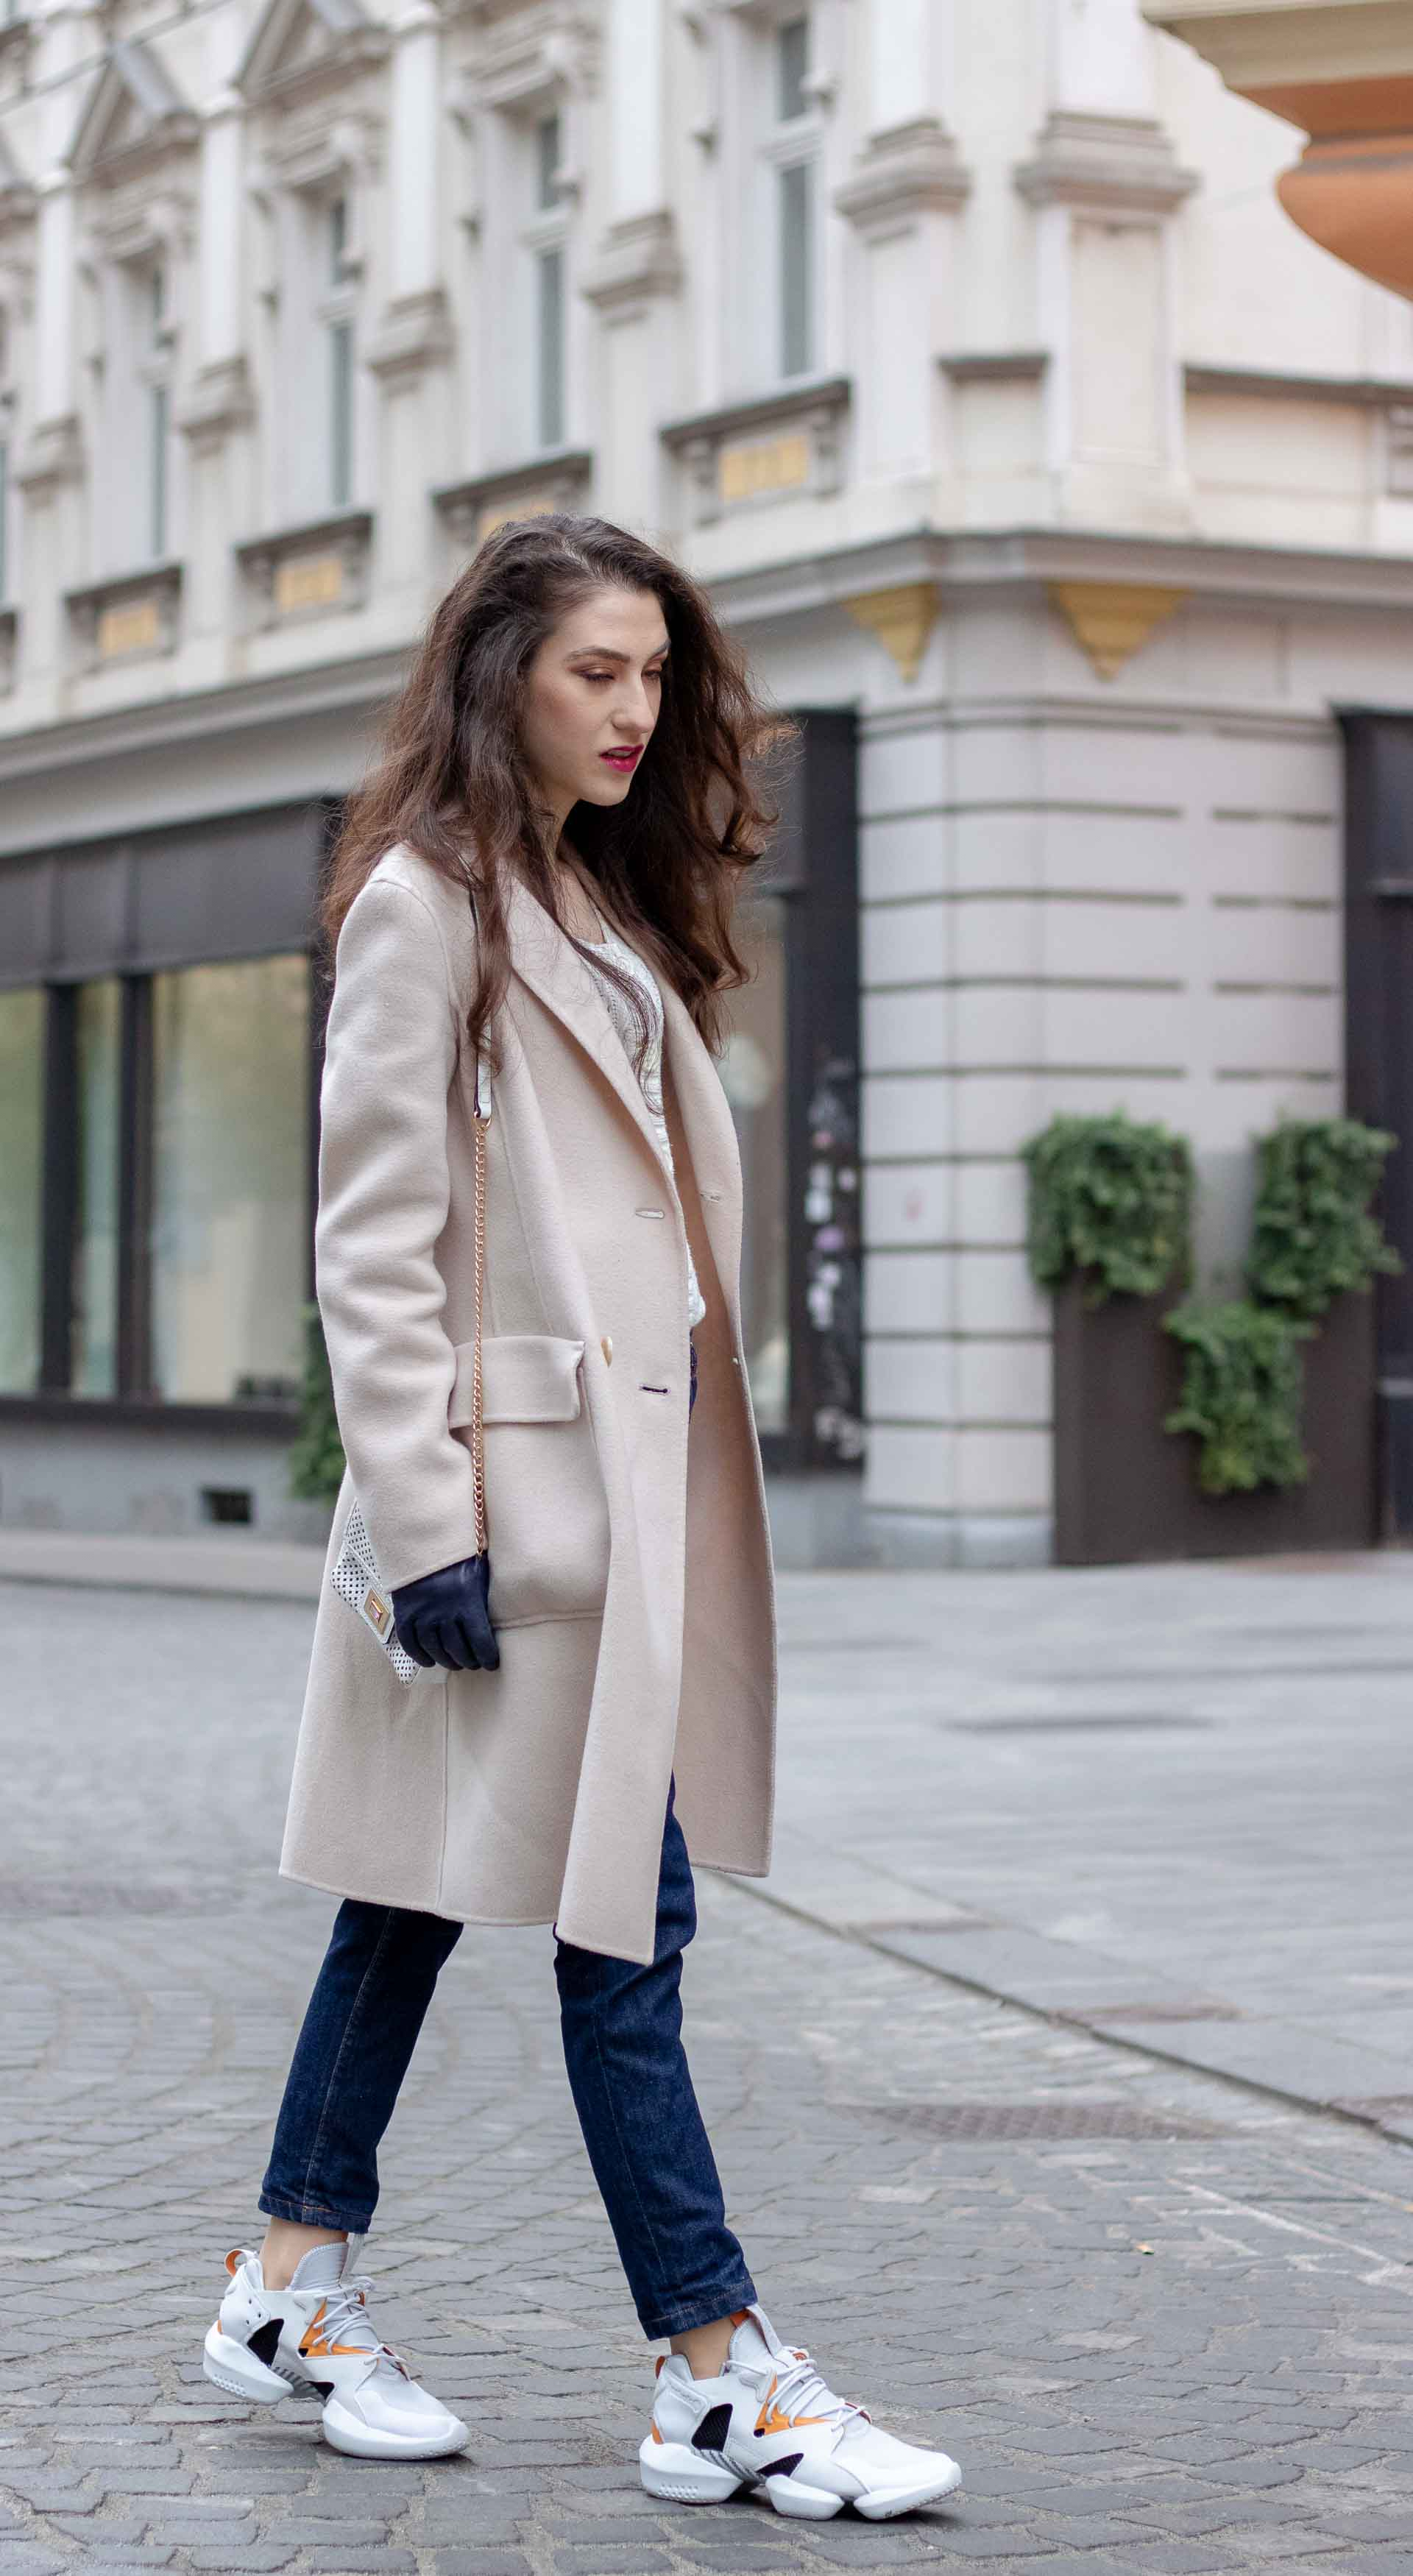 Beautiful Slovenian Fashion Blogger Veronika Lipar of Brunette from Wall dressed in A.P.C. dark blue denim jeans, Weekend Max Mara coat, Reebok instapump in Ljubljana